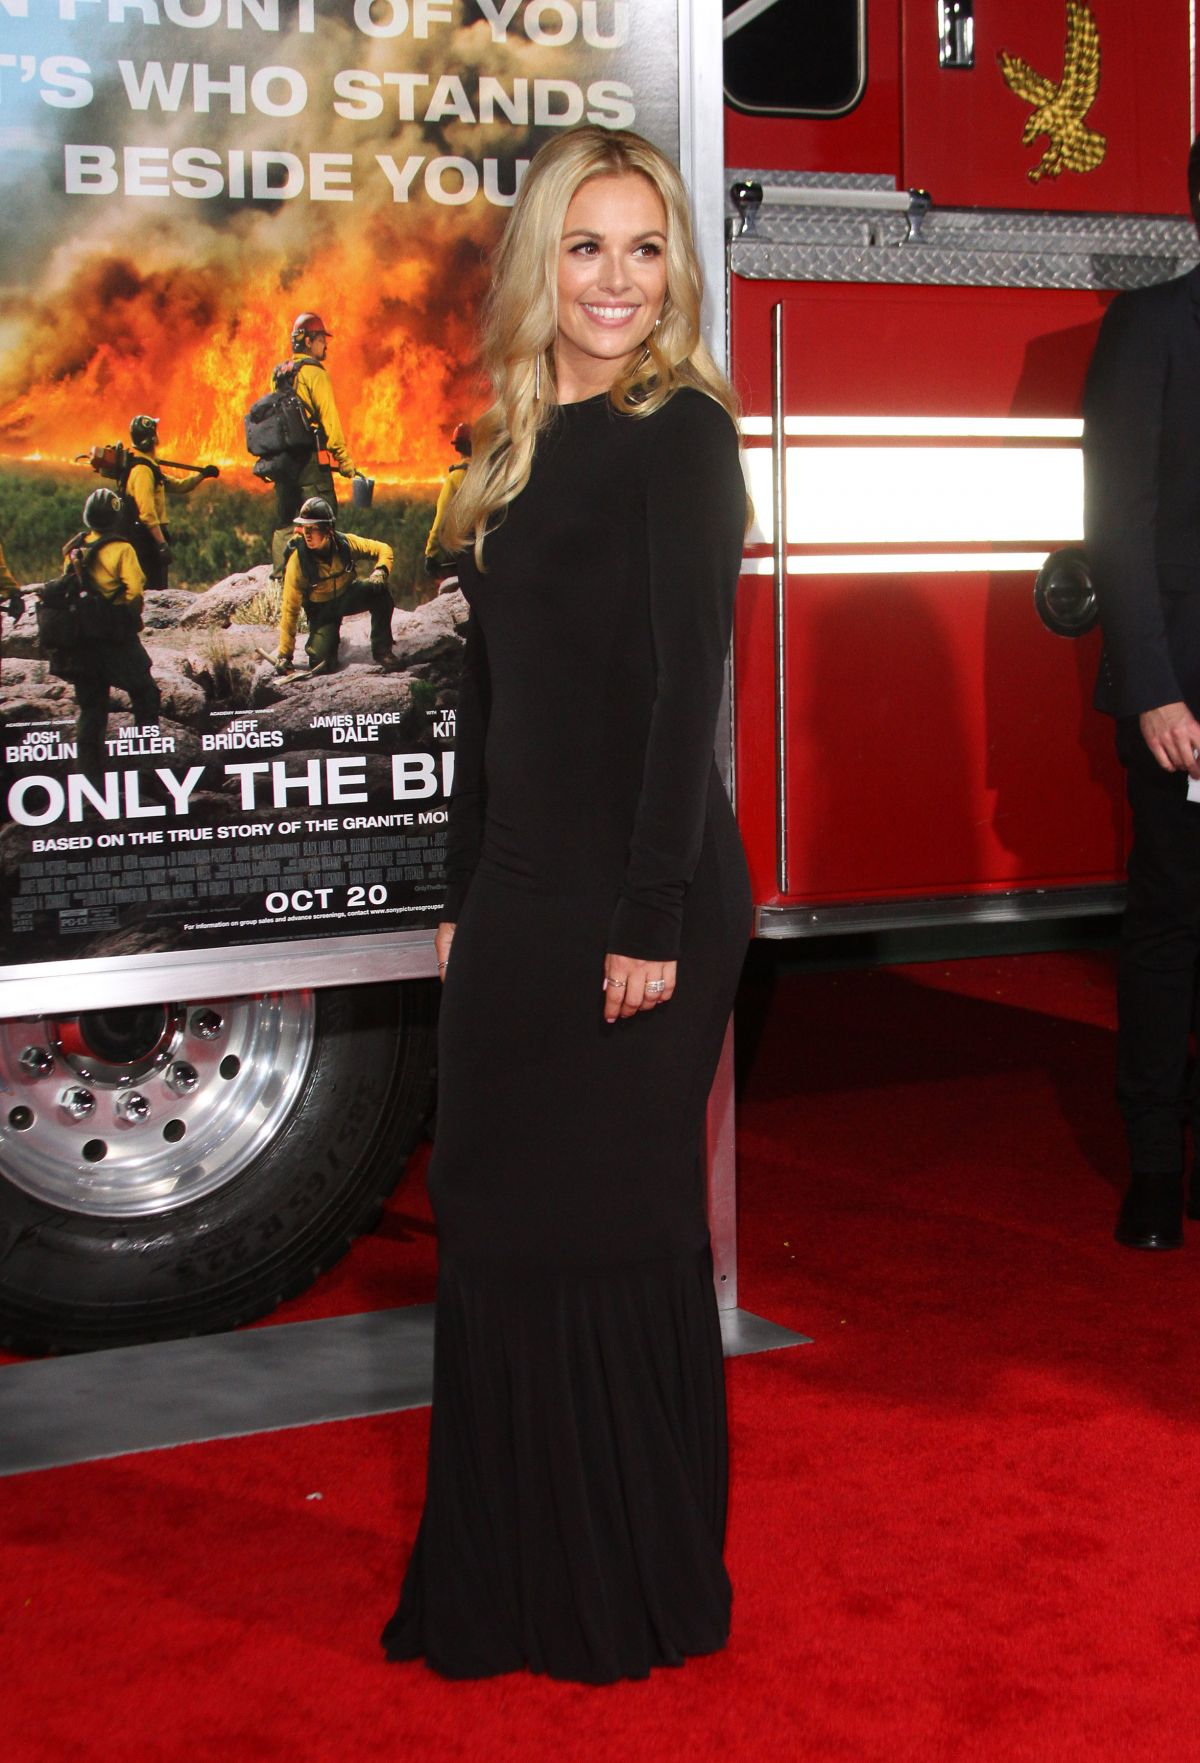 Natalie Hall At 'Only The Brave' film premiere, Los Angeles   natalie-hall-at-only-the-brave-film-premiere-los-angeles-6